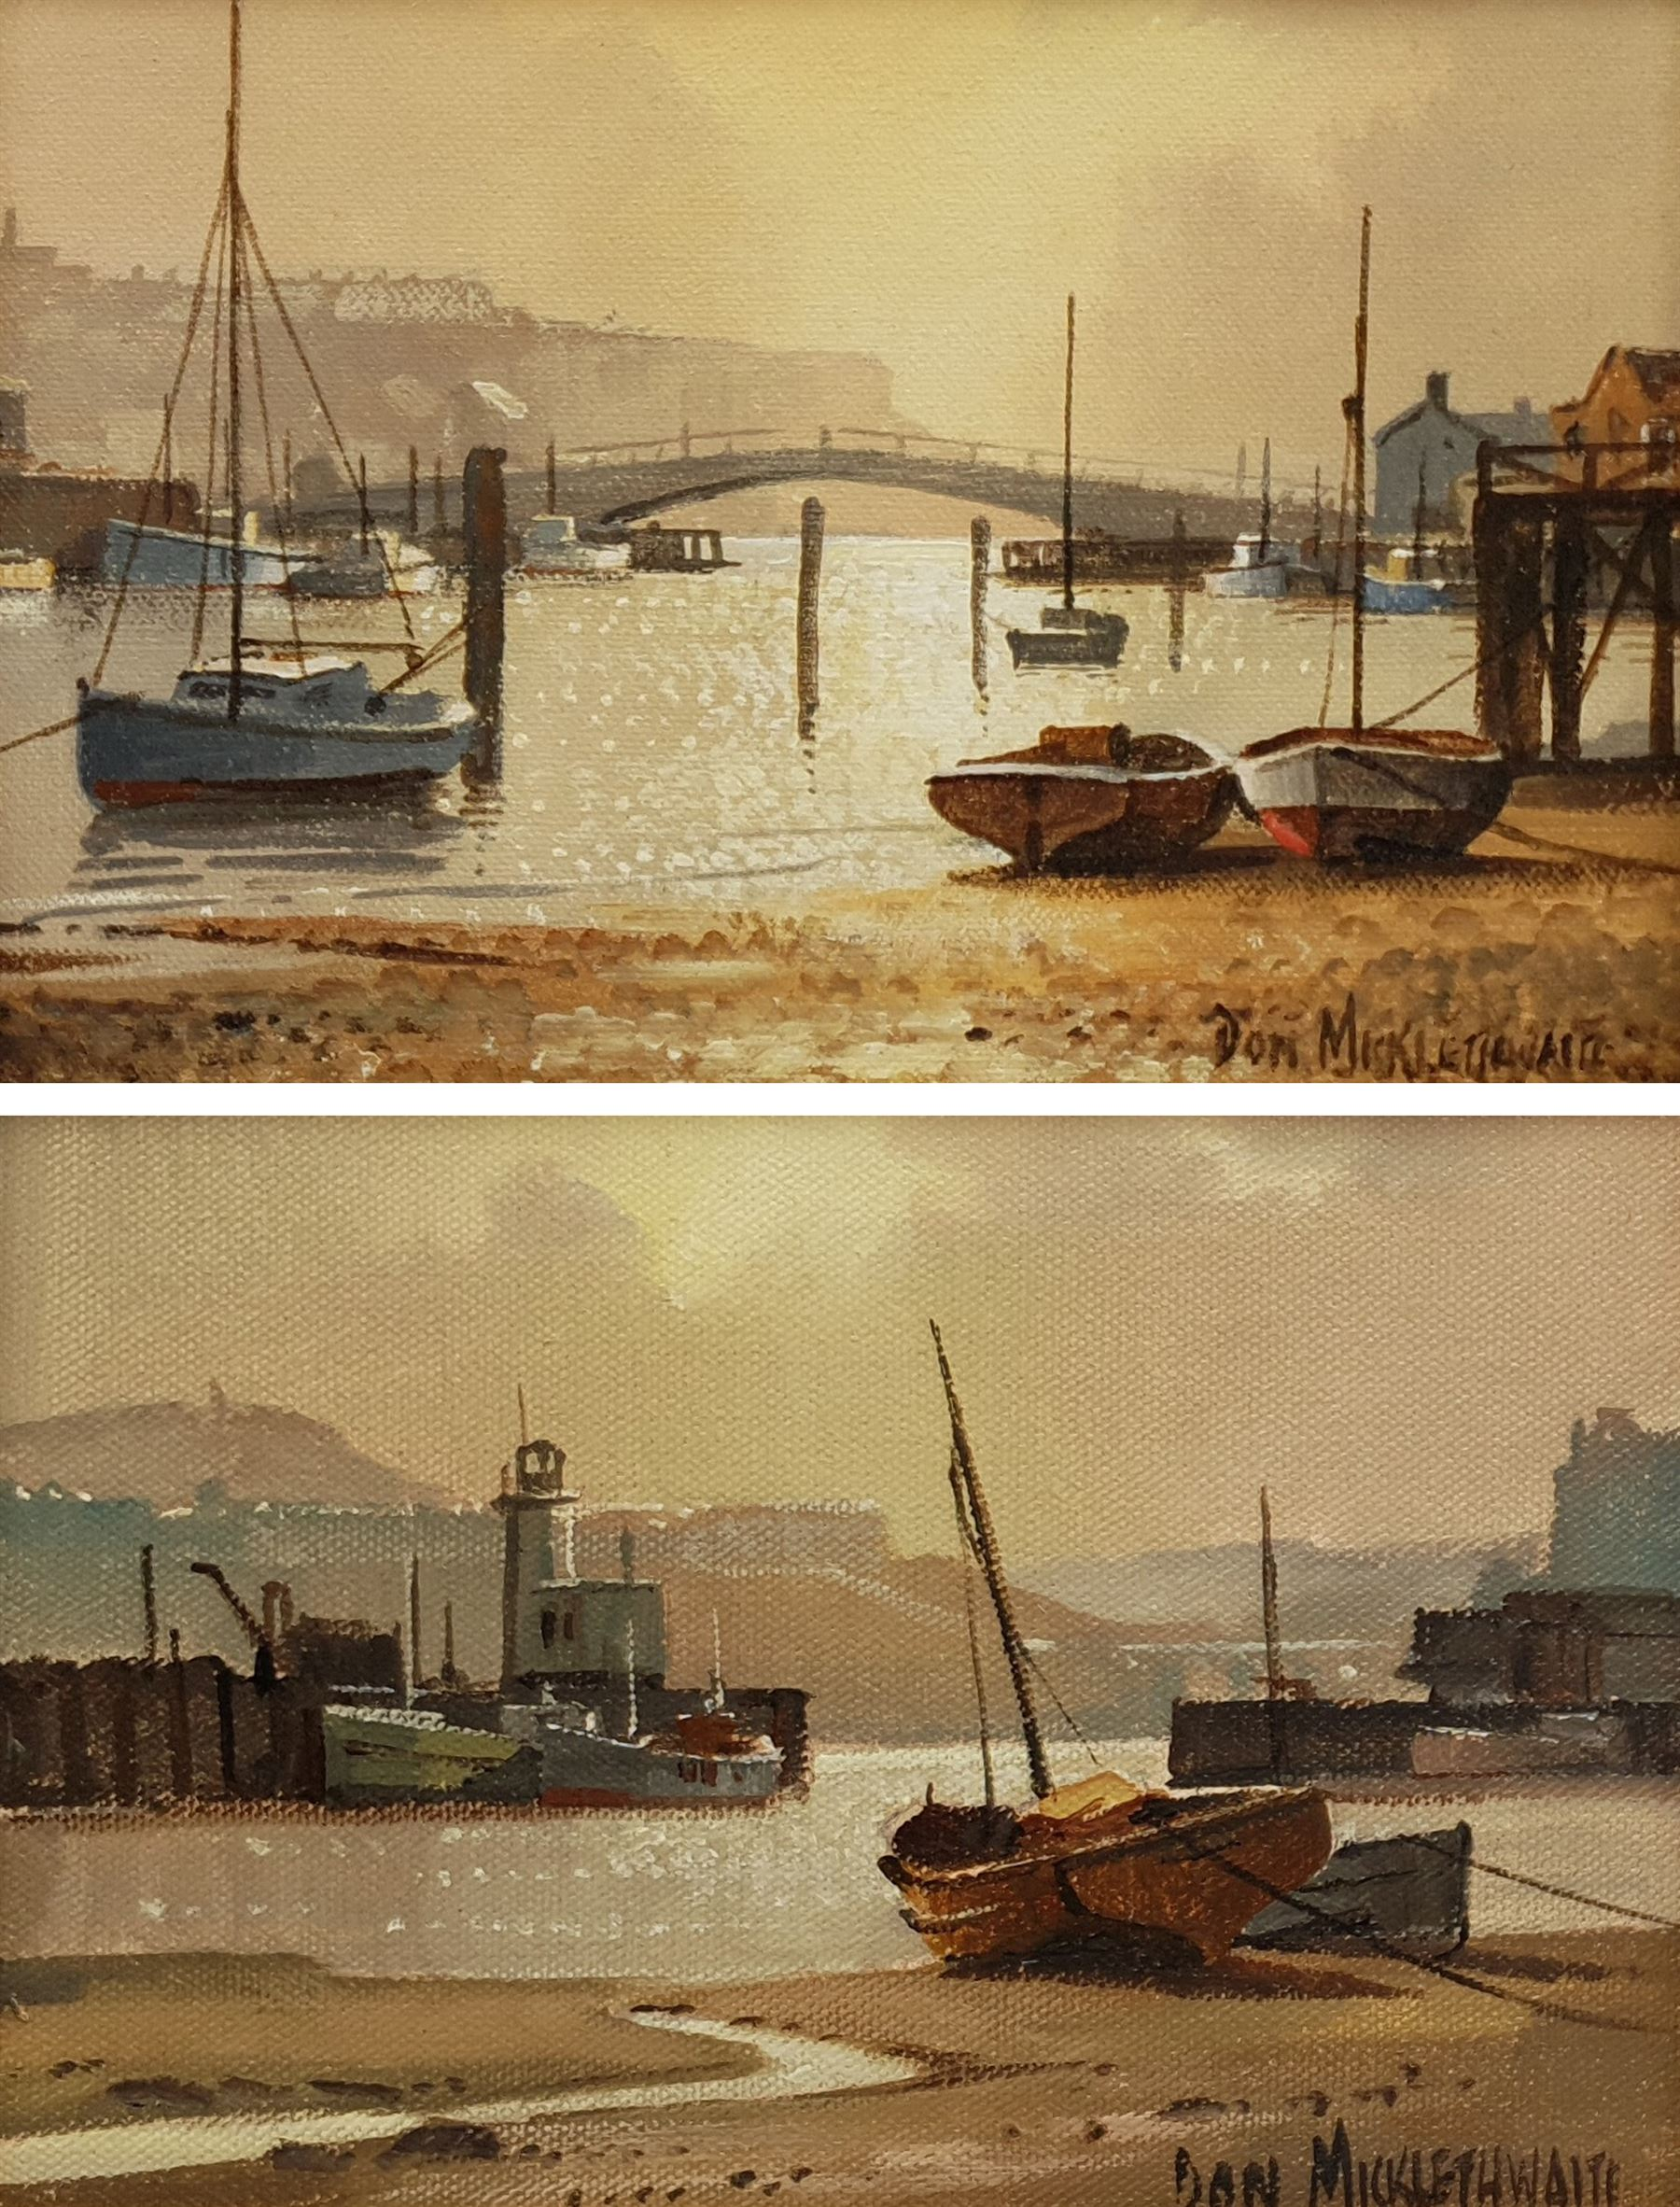 Don Micklethwaite (British 1936-): Scarborough and Whitby Harbours